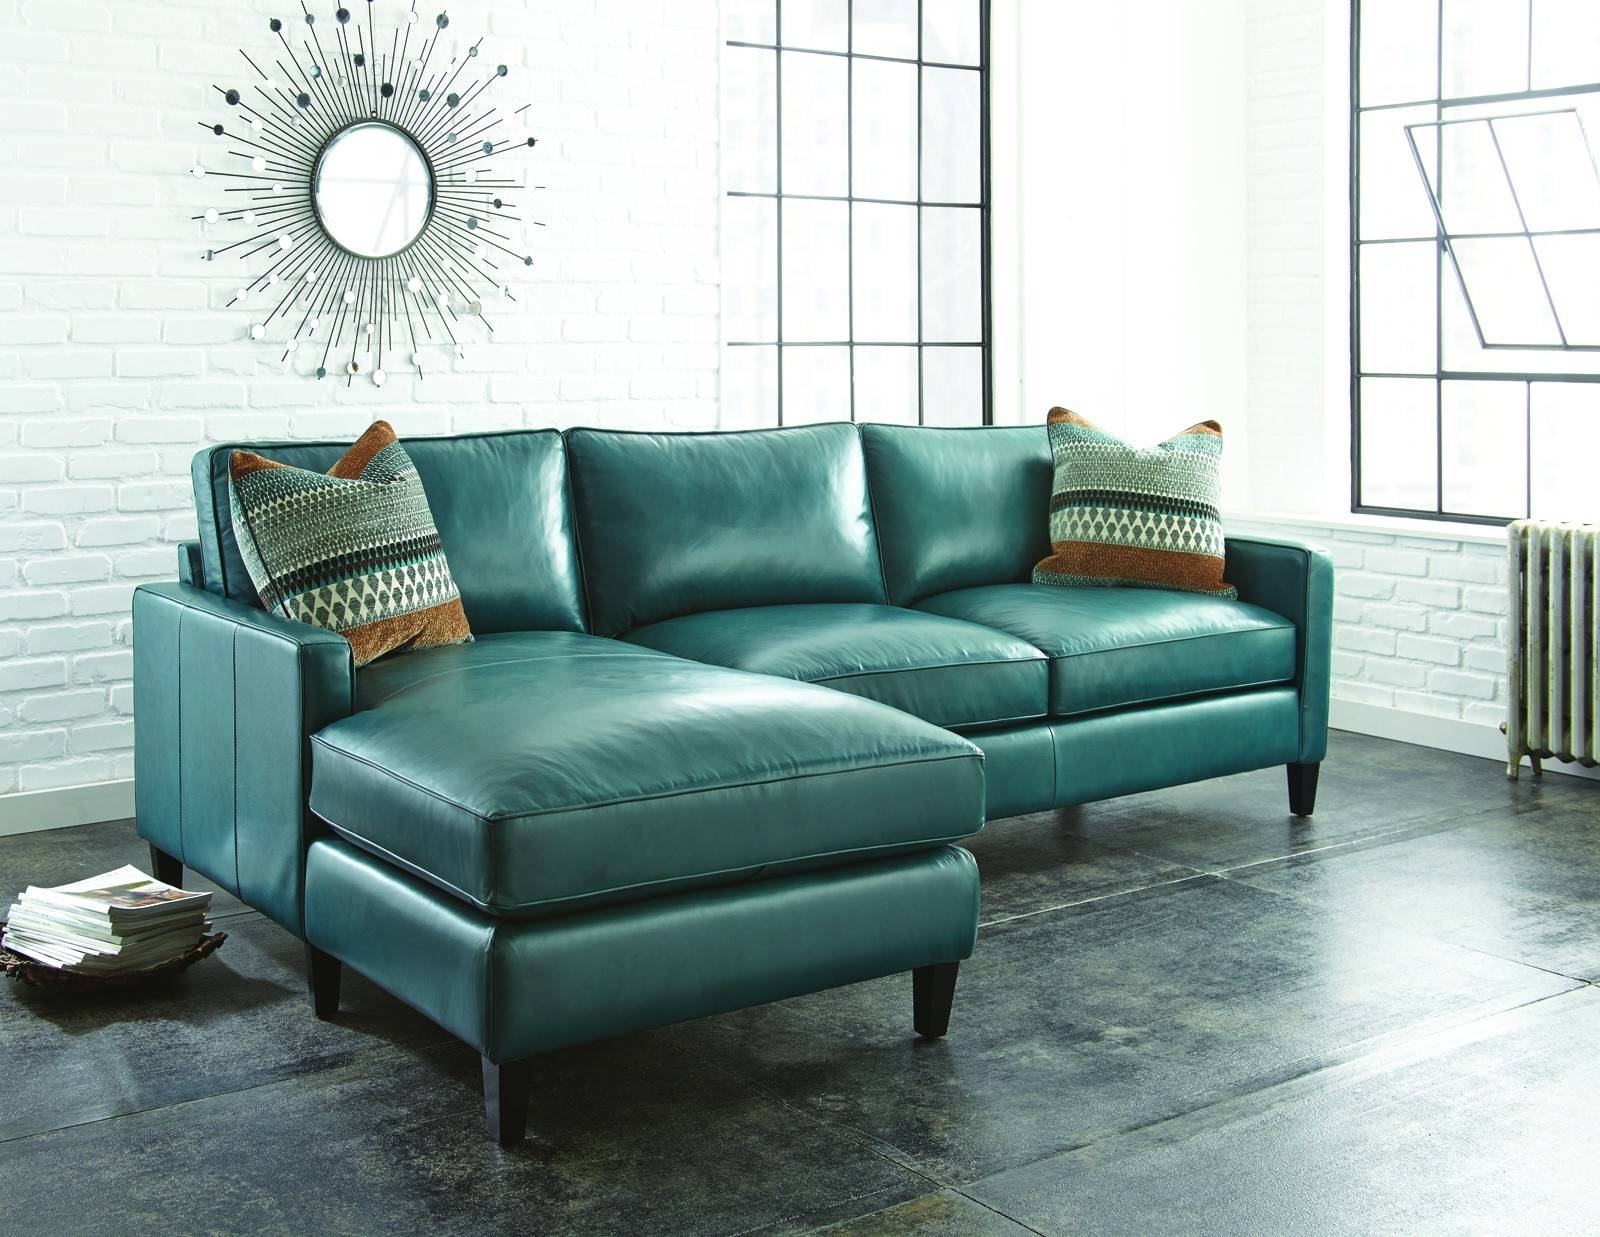 Remarkable Turquoise Leather Sectional Sofa 58 About Remodel with regard to Abbyson Living Charlotte Dark Brown Sectional Sofa and Ottoman (Image 21 of 30)